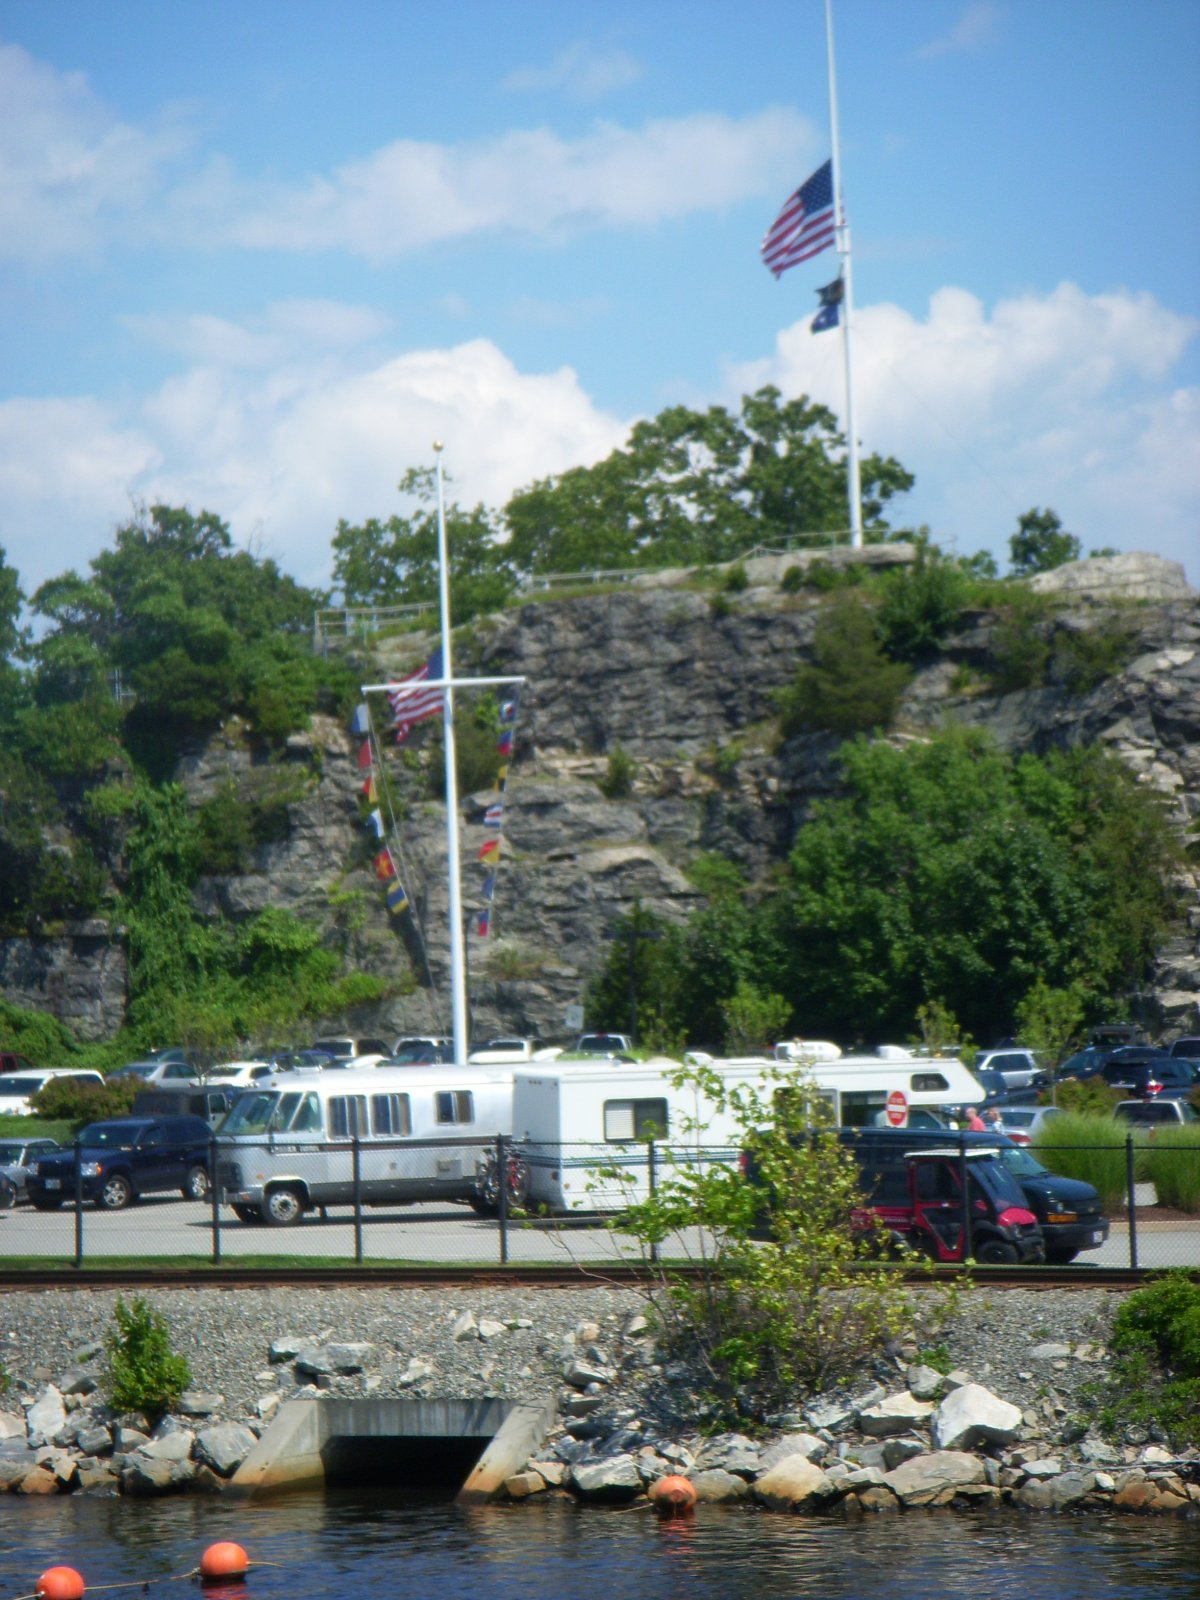 Click image for larger version  Name:Newport,RI. Aug2011 049.jpg Views:73 Size:336.6 KB ID:137976